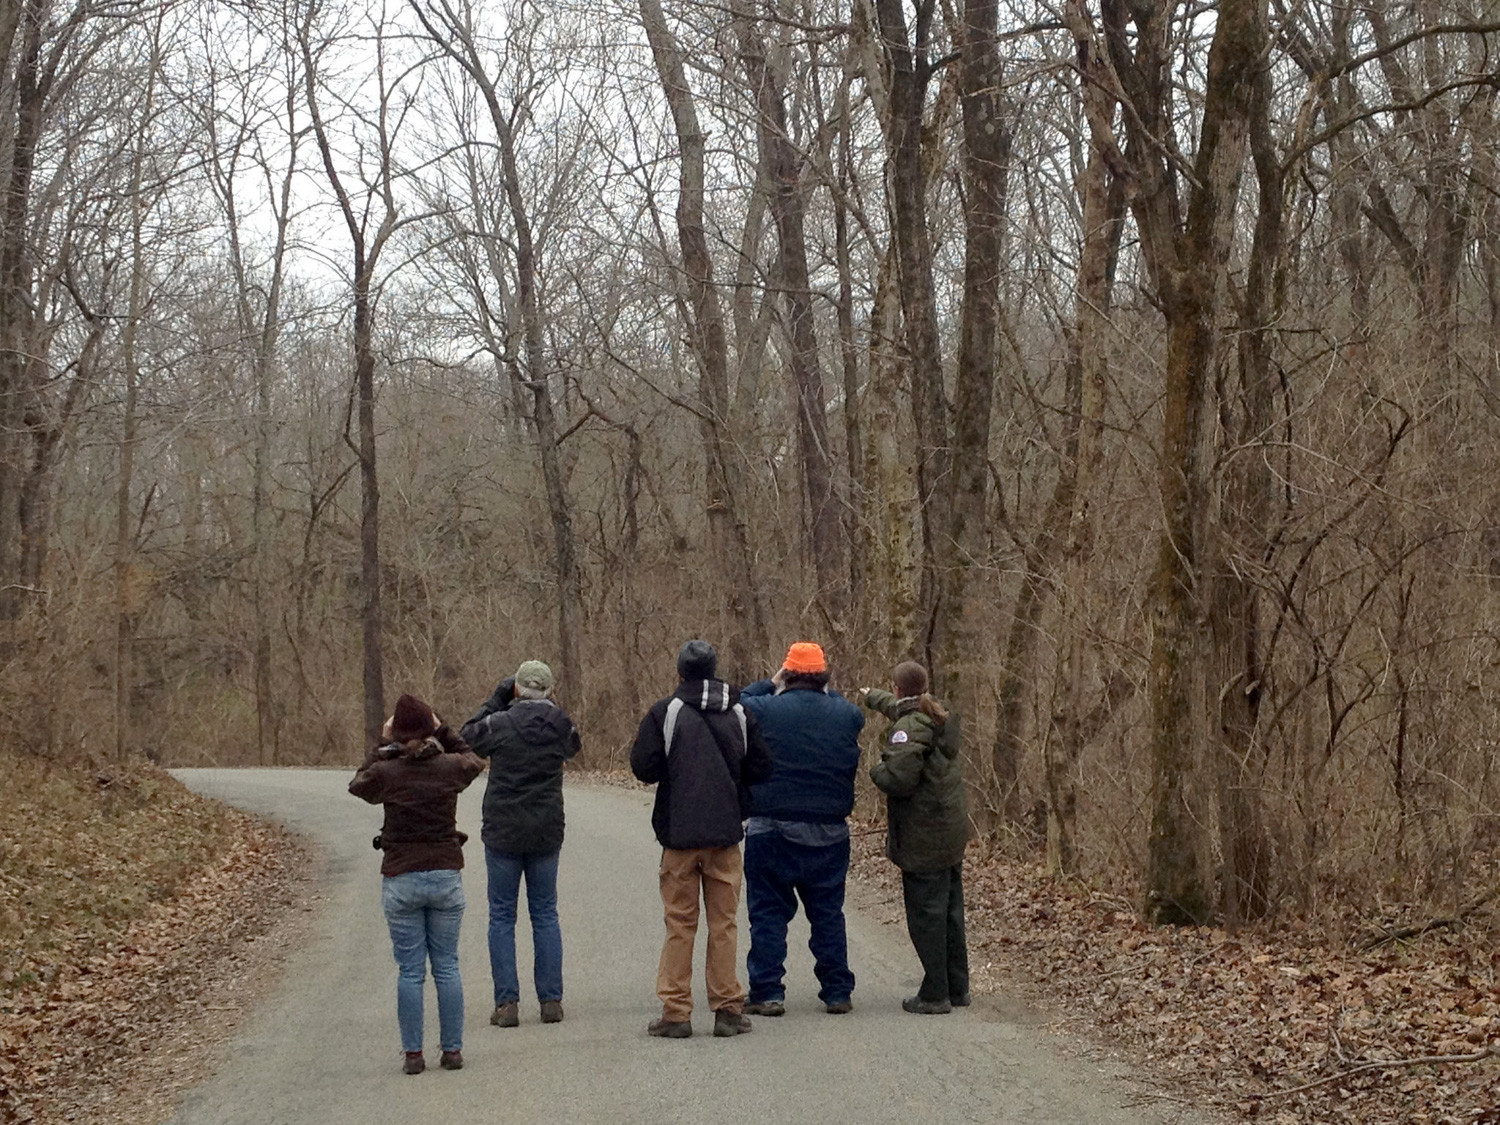 The Christmas bird count takes place around the country every year, even if it isn't exactly at Christmas. Here, some bird enthusiasts tally up flying friends at Ceasar Creek Lake, Ohio.